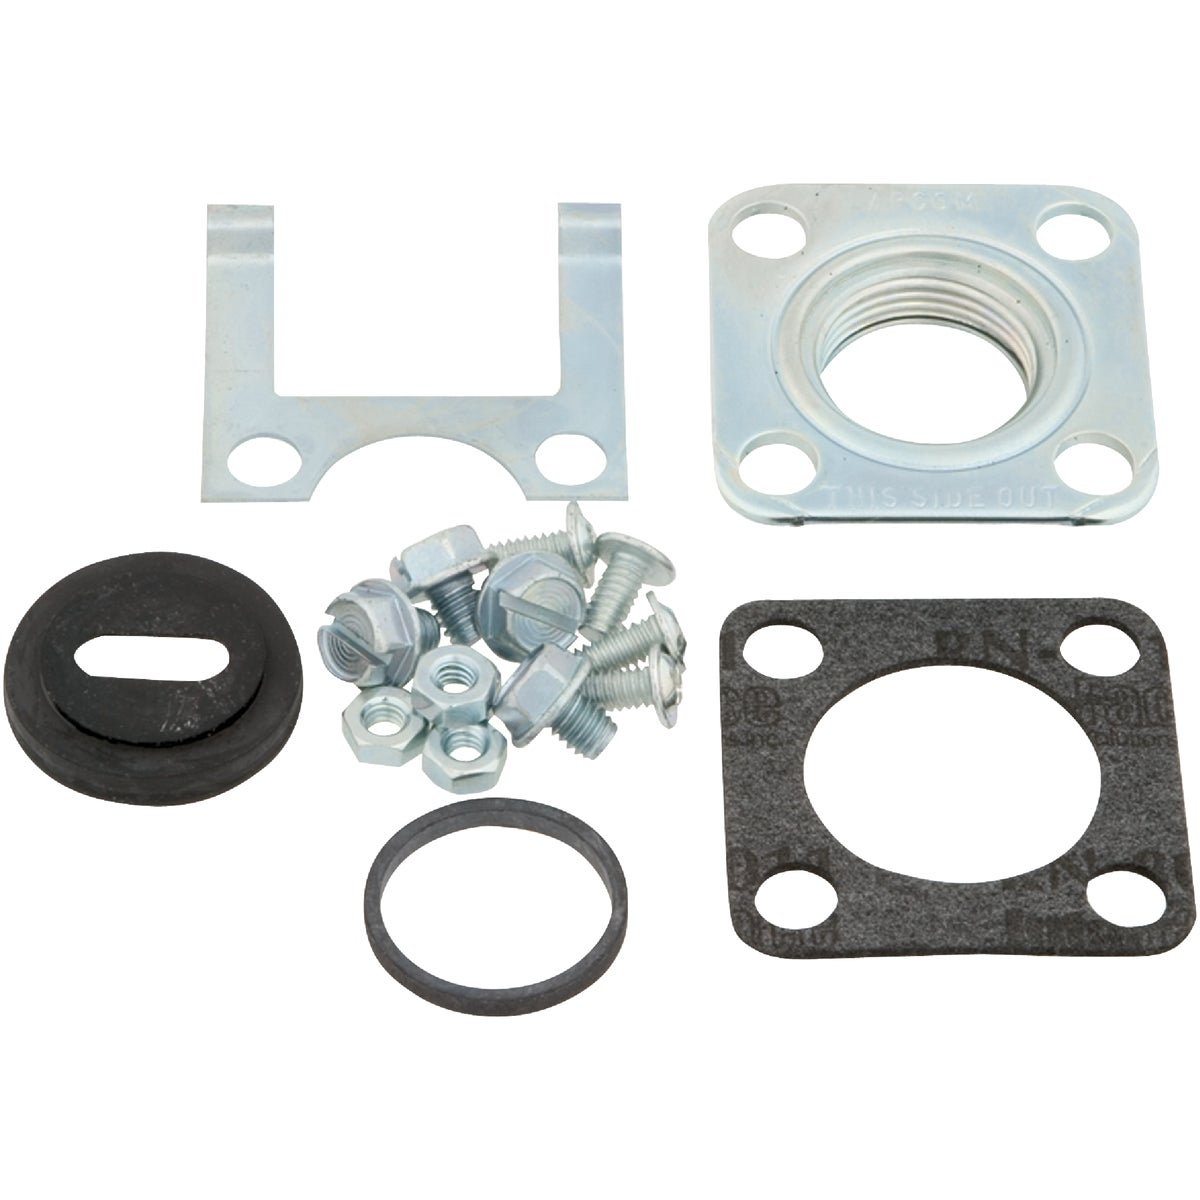 ELEMENT ADAPTOR KIT - 9000030 by Reliance State Ind